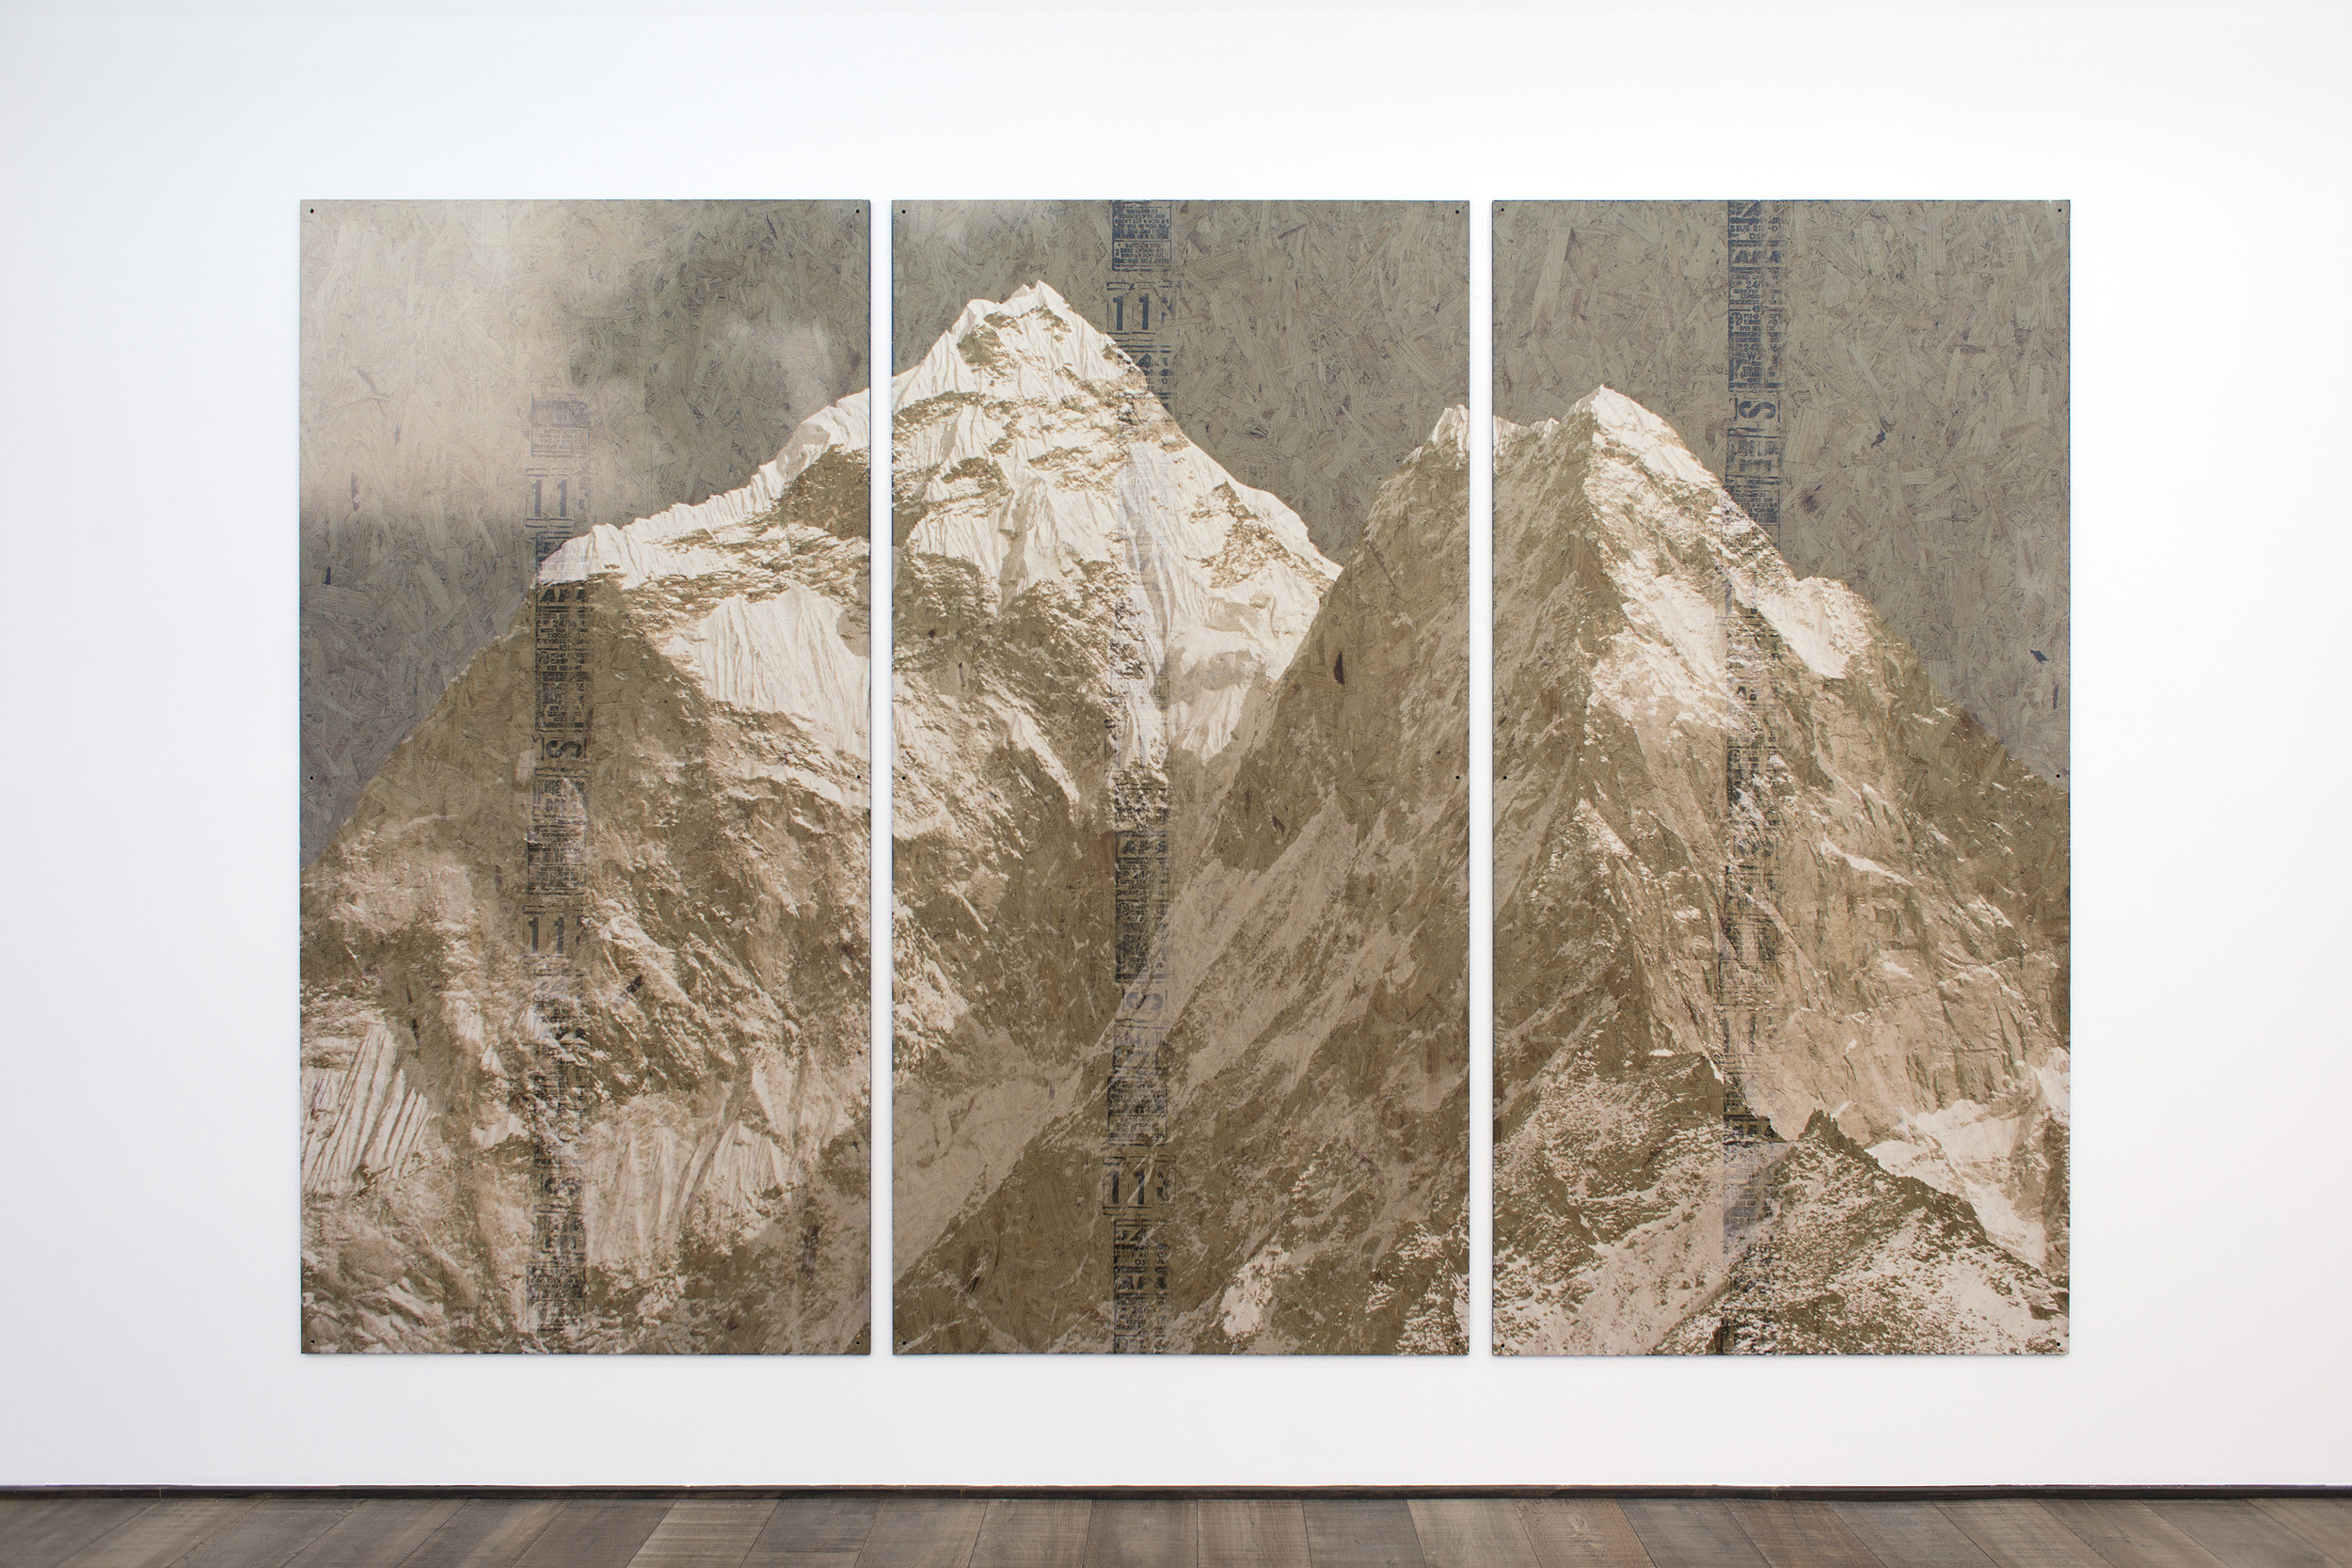 The Law of Reversed Effect   2014    Inkjet on perforated vinyl adhered to OSB, matter medium   96 x 149 inches